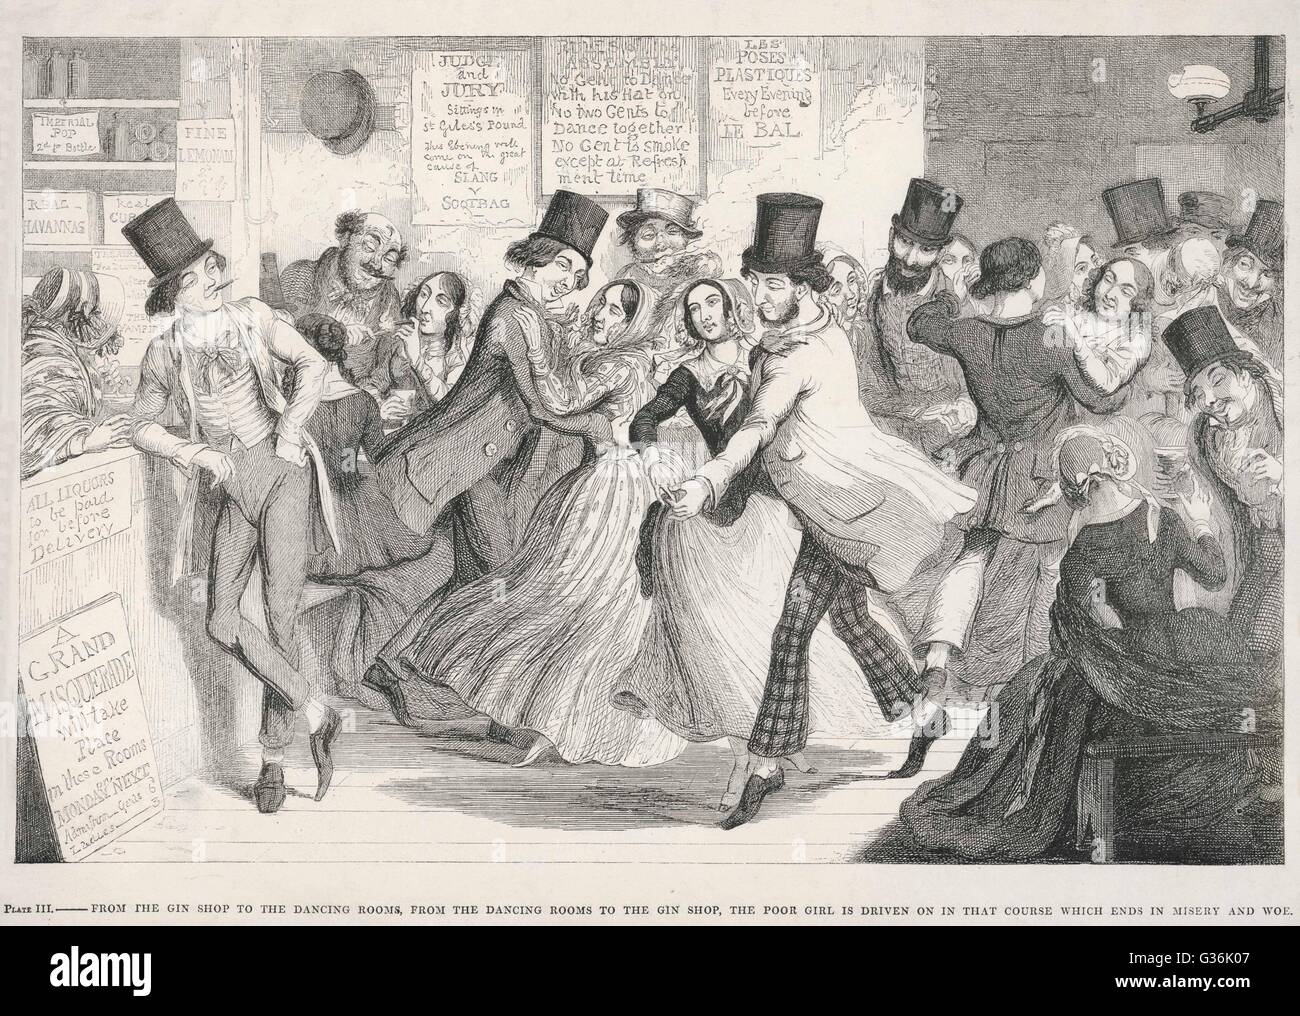 A popular dance hall in the East End of London -- a brother and sister get into undesirable company.     Date: circa - Stock Image